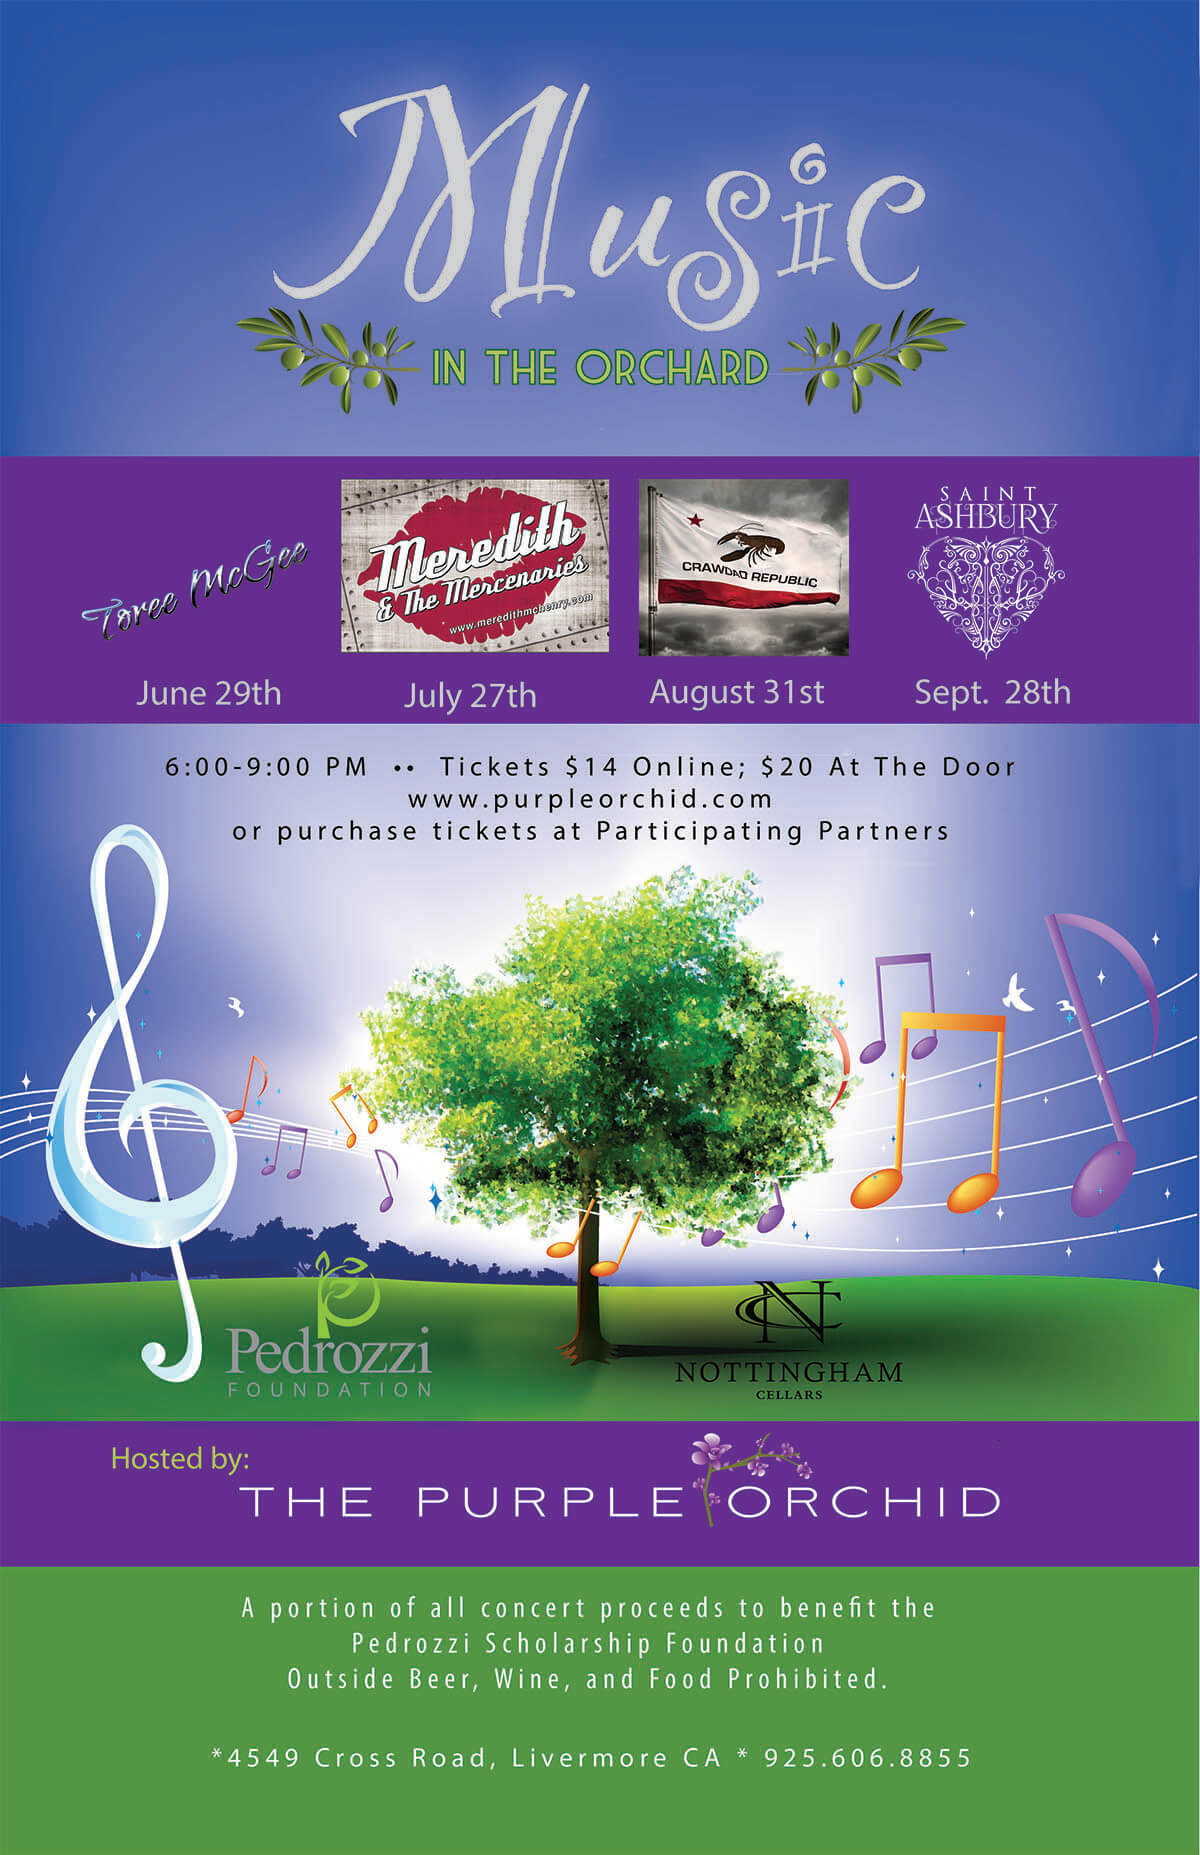 2017 Music in the Orchard Concert Livermore